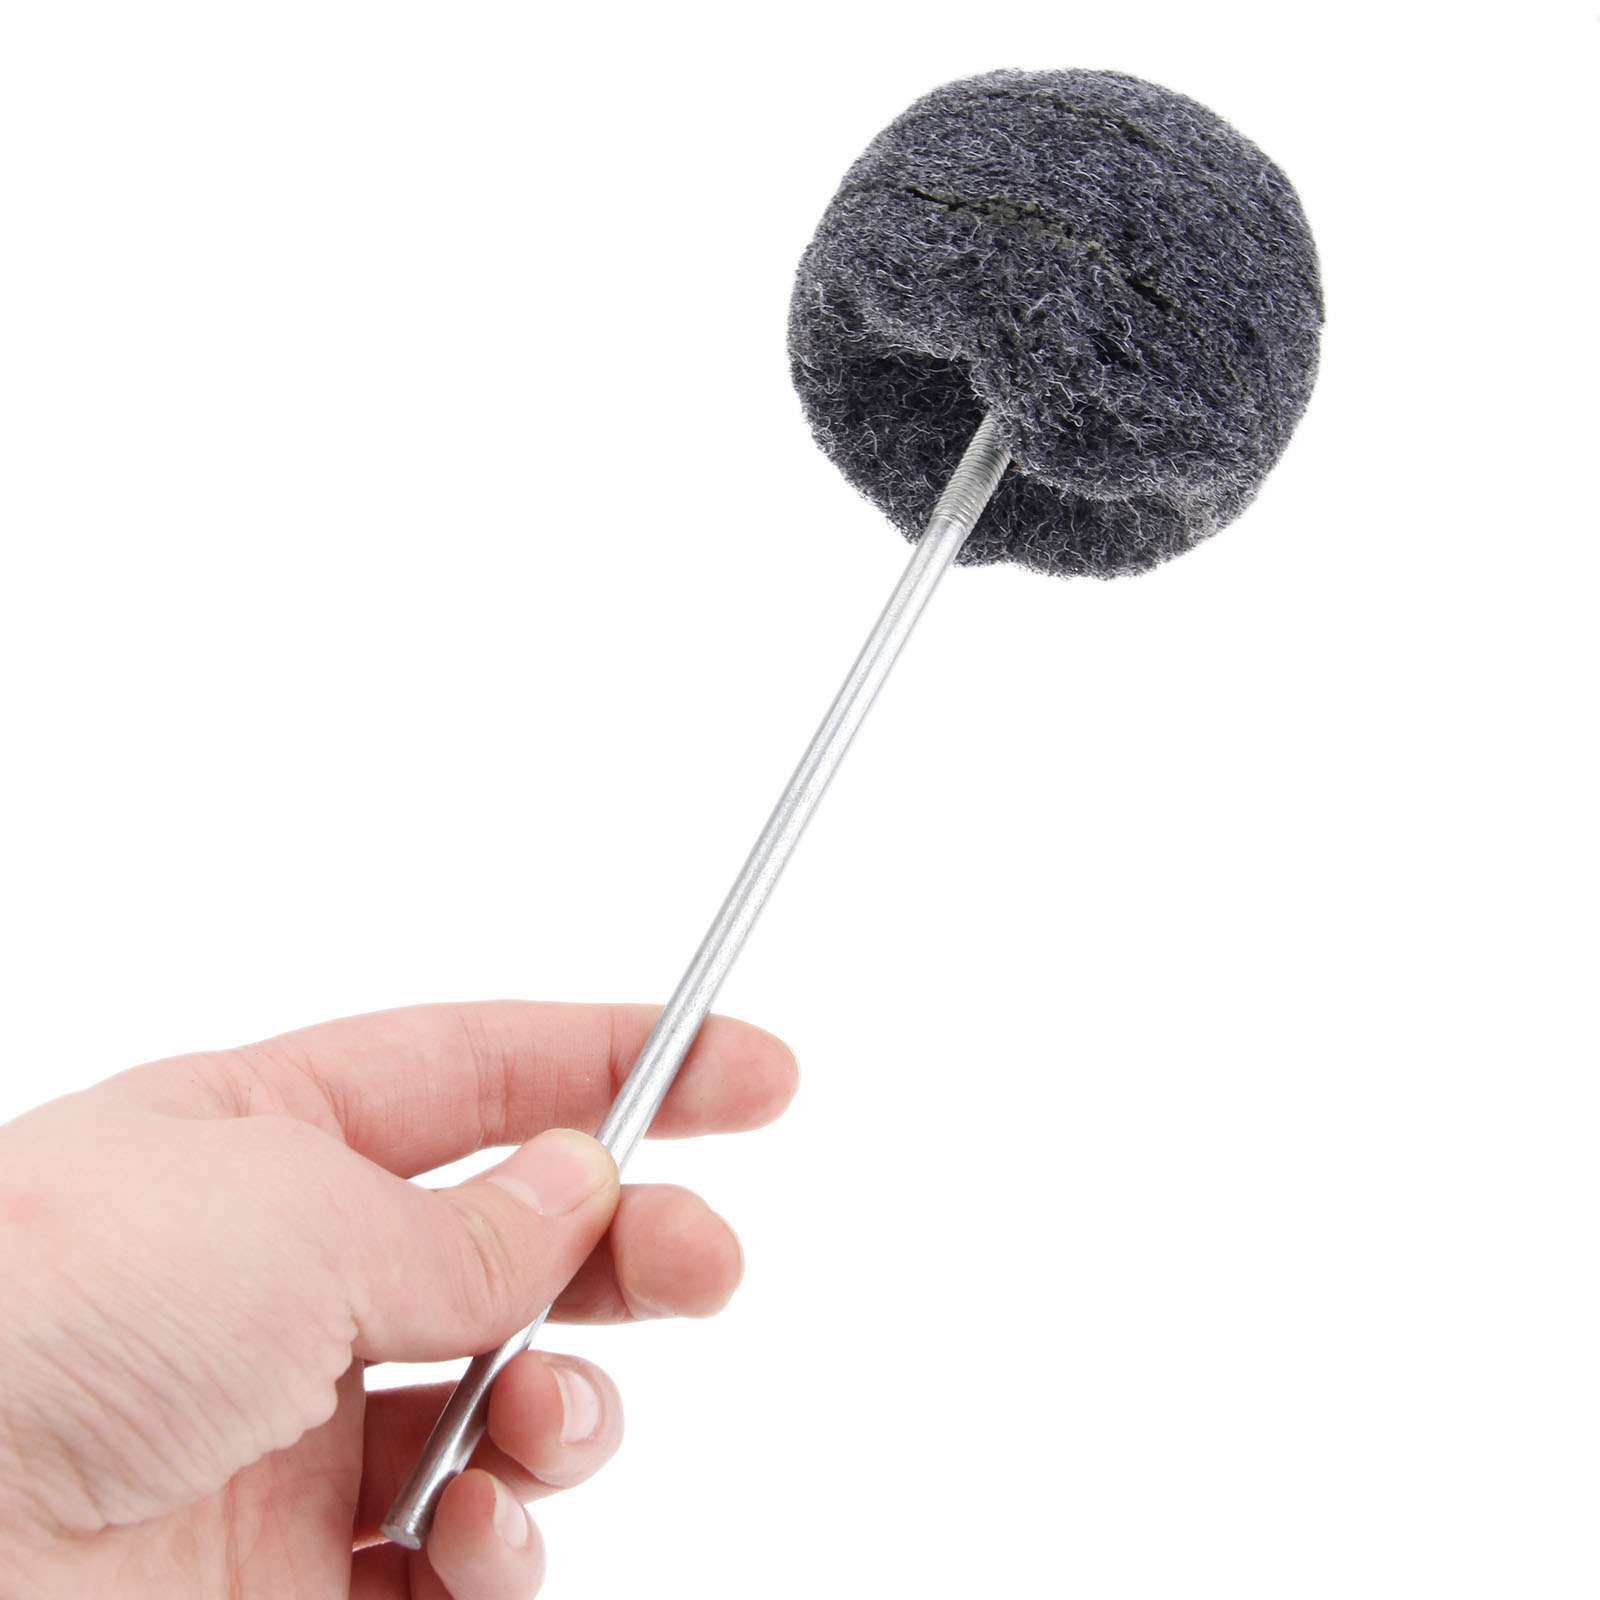 DRELD Electric Drill Brush Cleaning Brush Scouring Pad Home Toilet Bathroom Tub Brush Cleaning Hand Tools M14 Shank Extended Rod